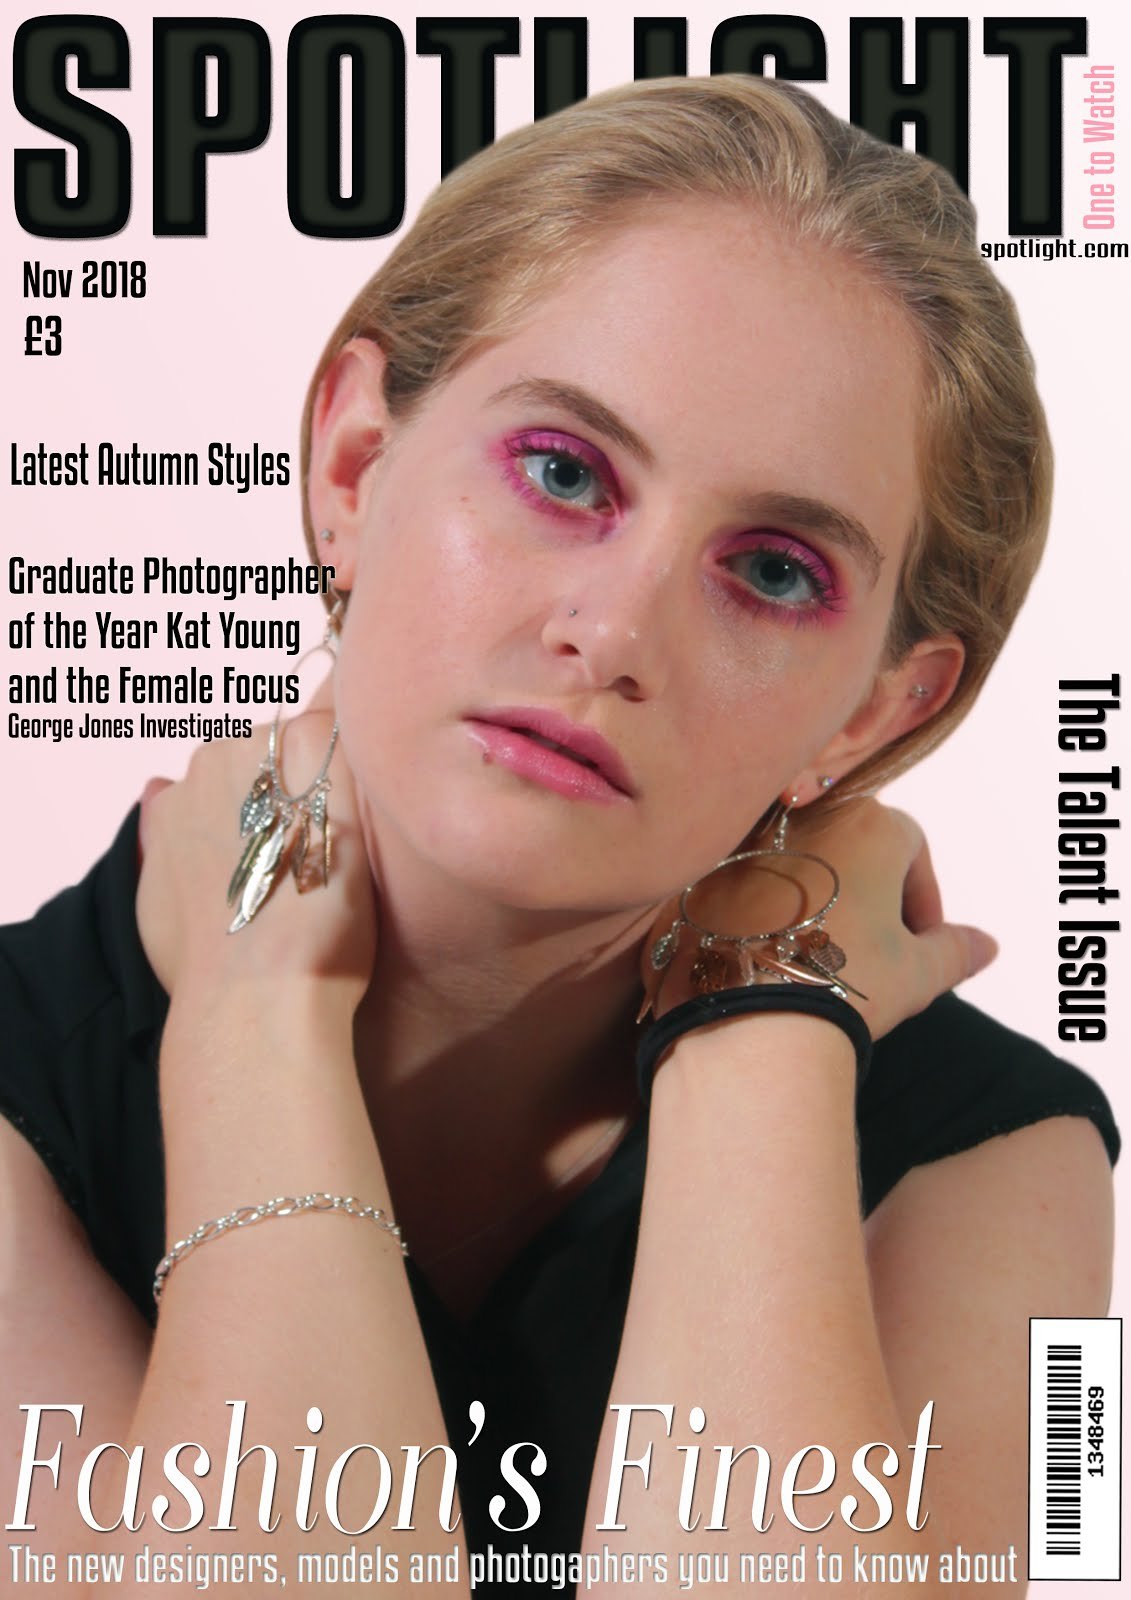 My magazine cover: Edition 2